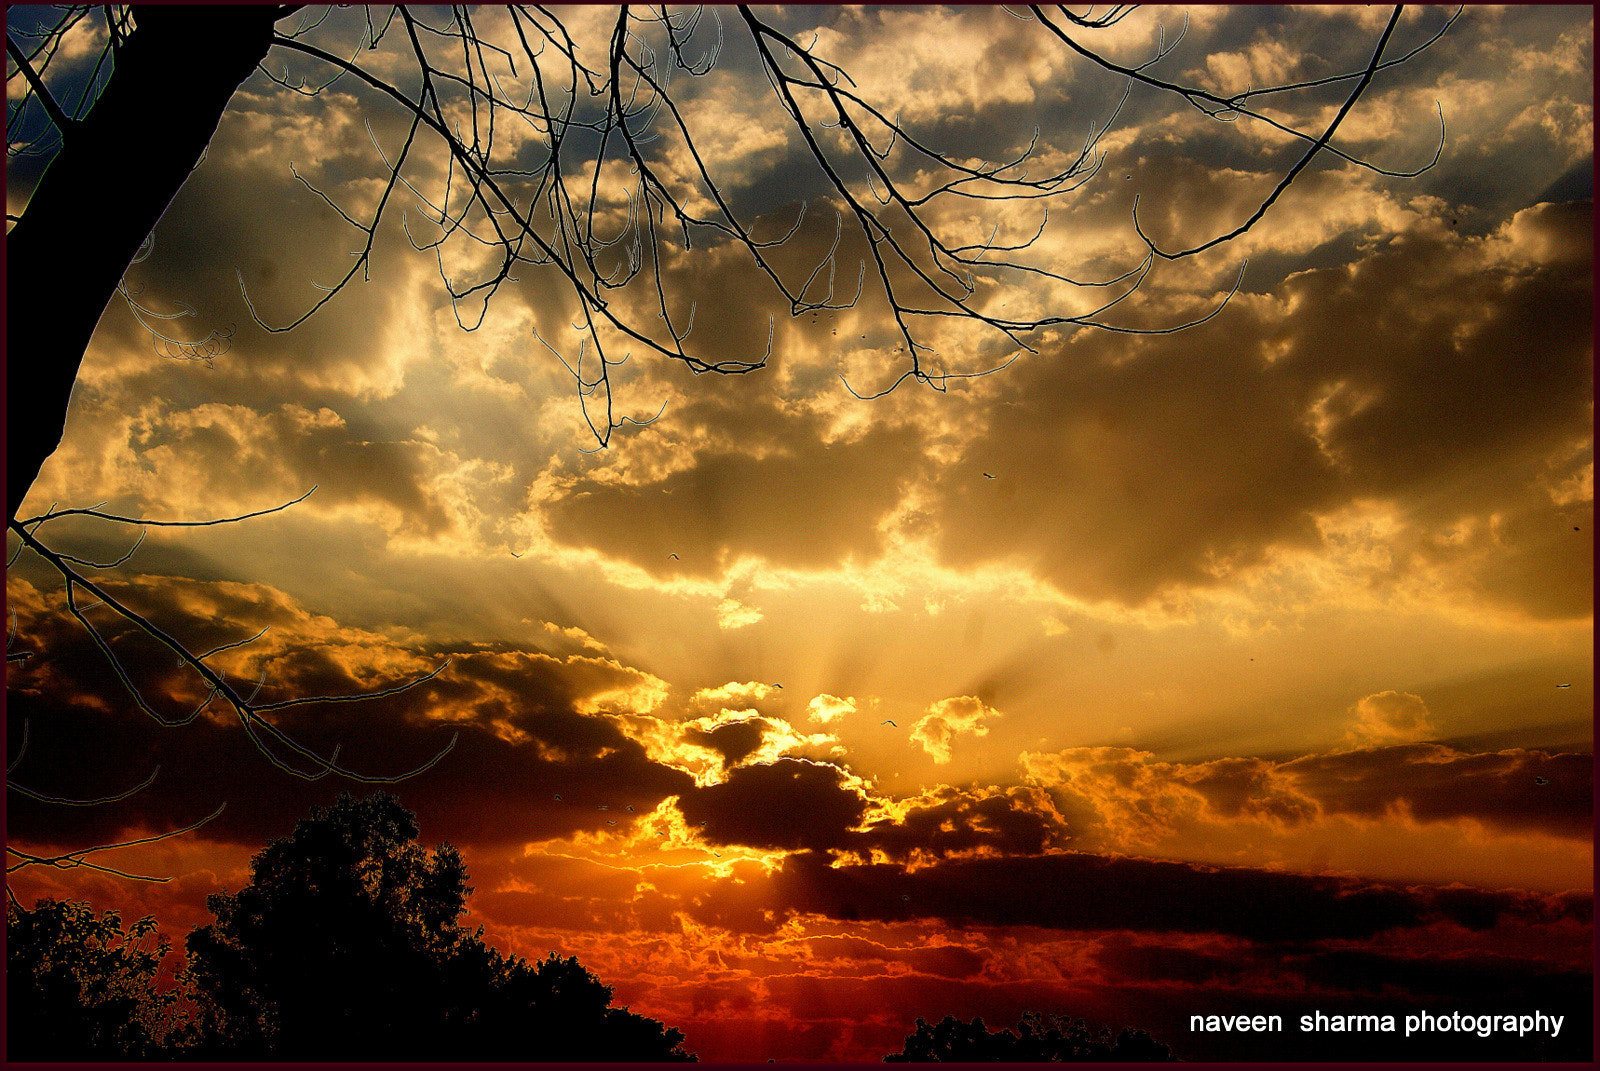 Photograph CLOUDY SUNSETTING by naveen sharma on 500px